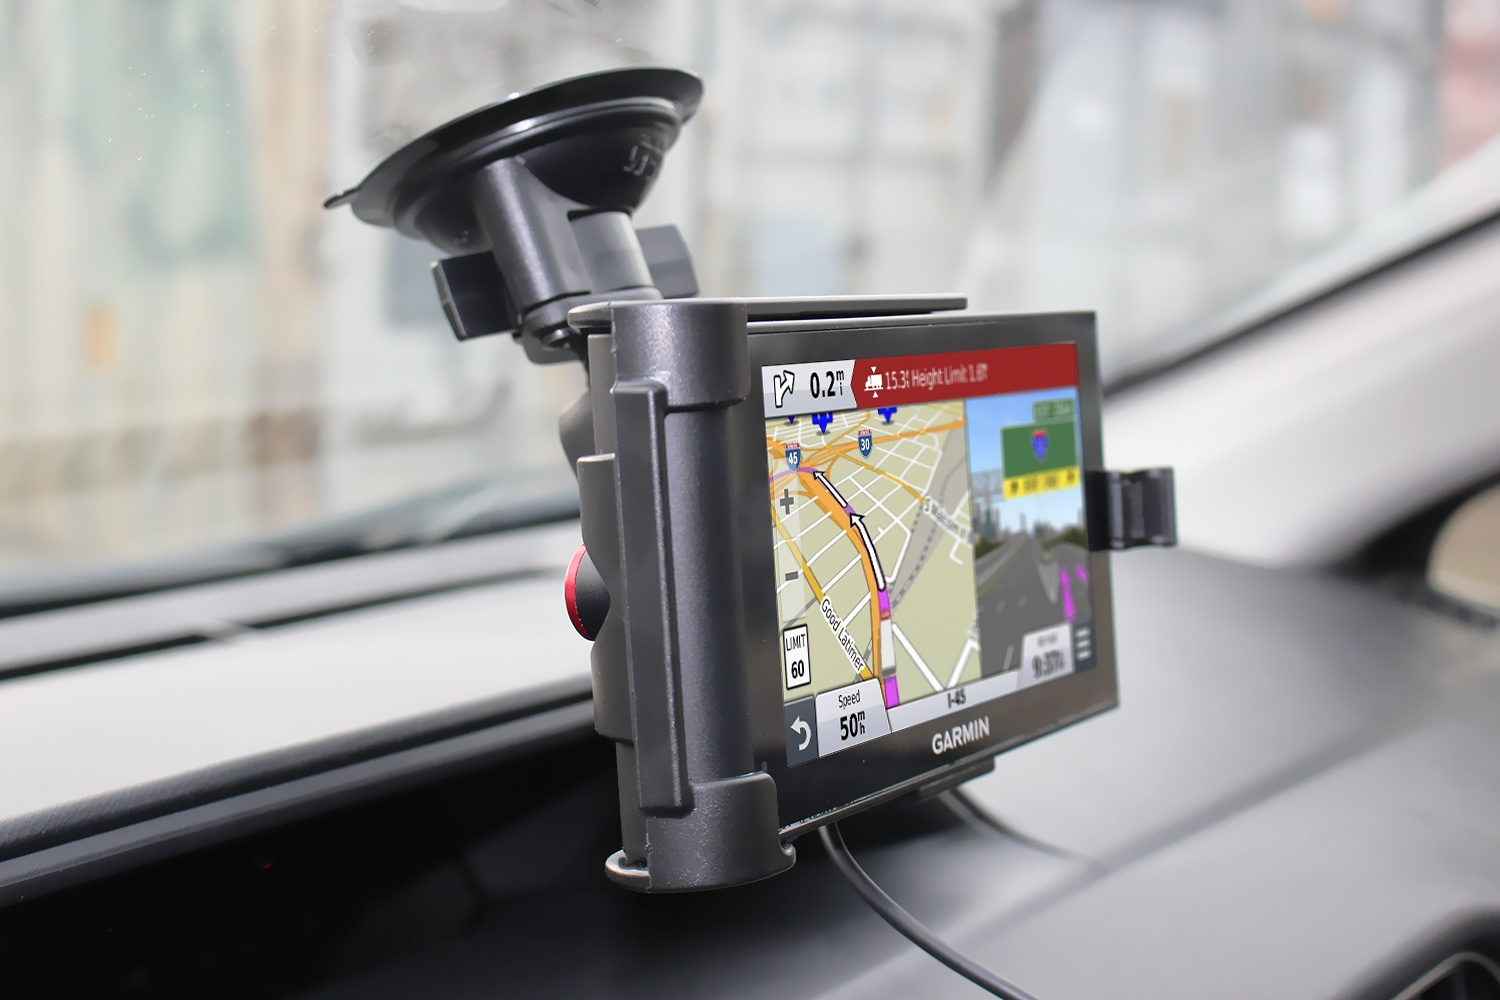 New Cradle for Garmin nüviCam and dēzlCam